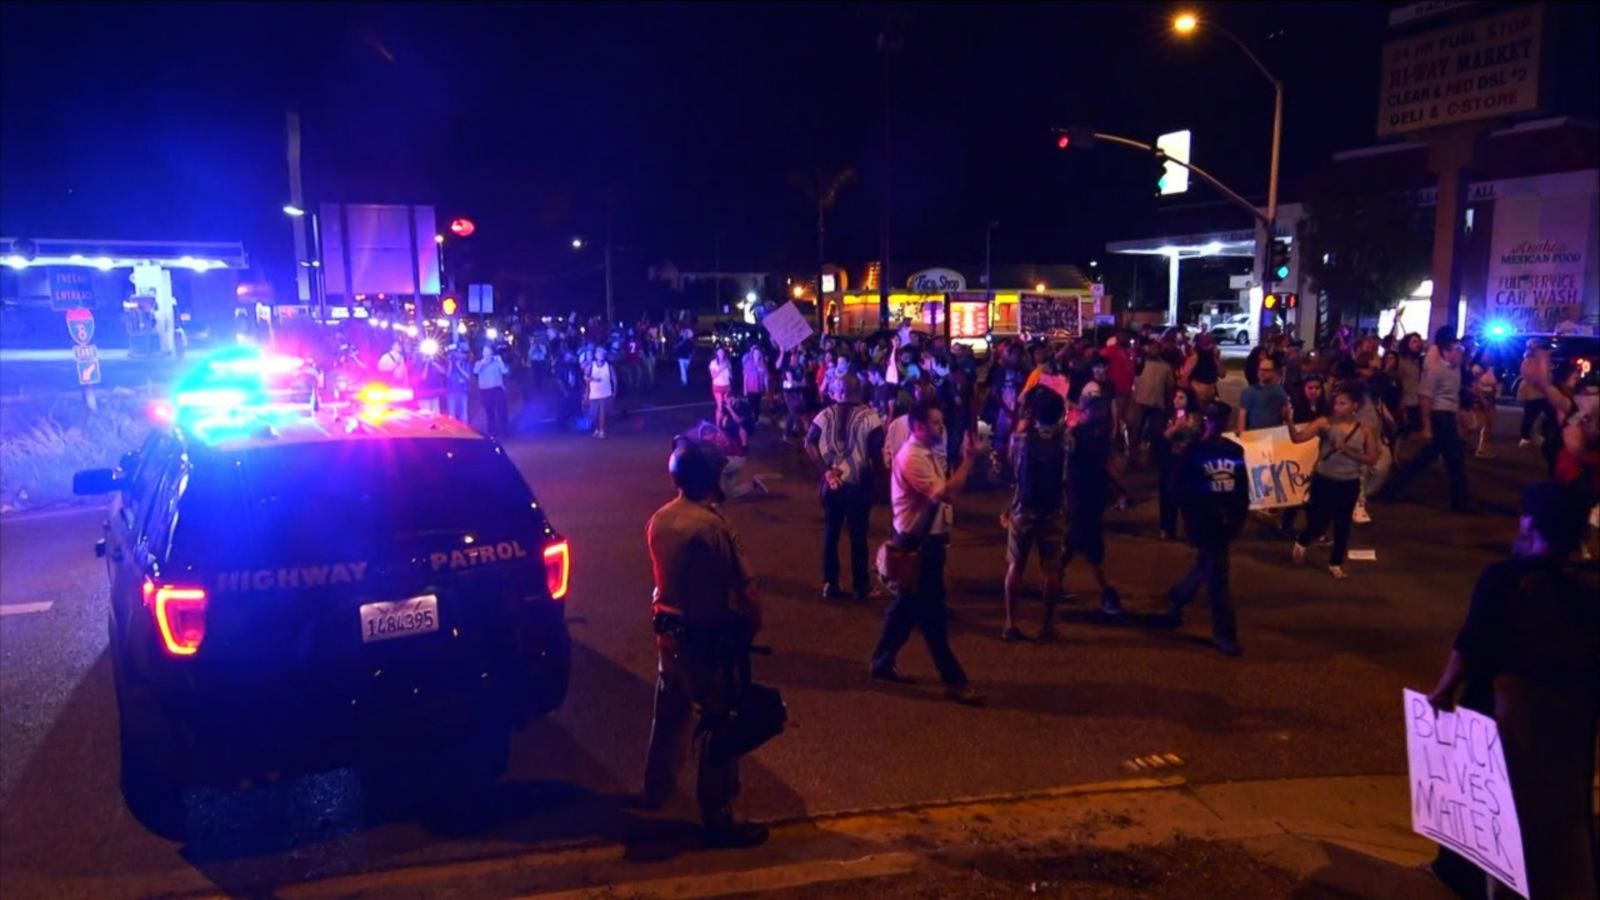 VIDEO: Protesters Flood Streets After California Police Shooting